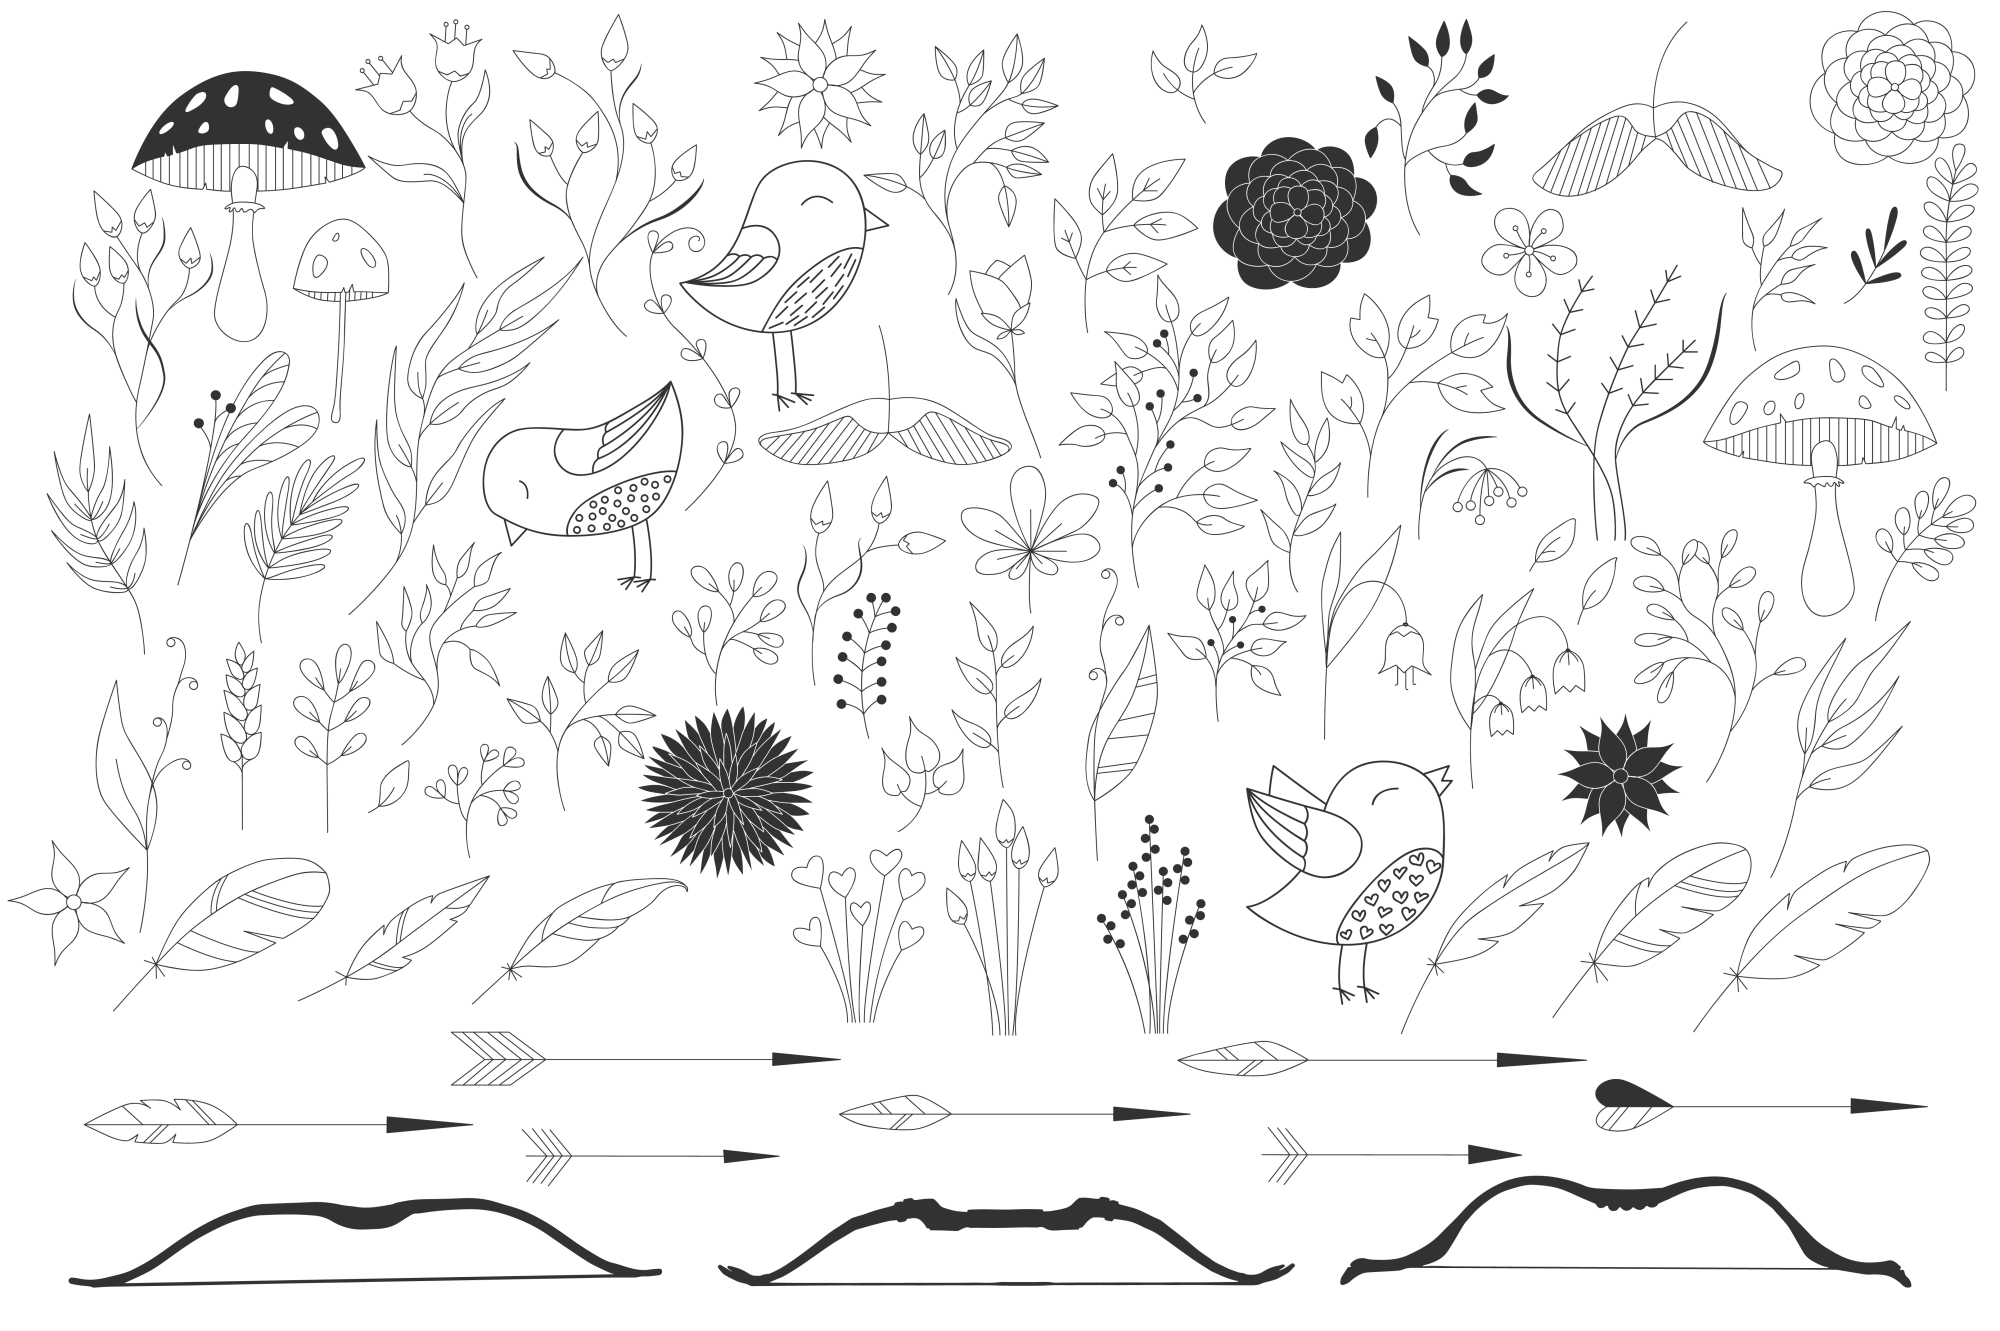 450 handsketched elements. Nature mega pack example image 9